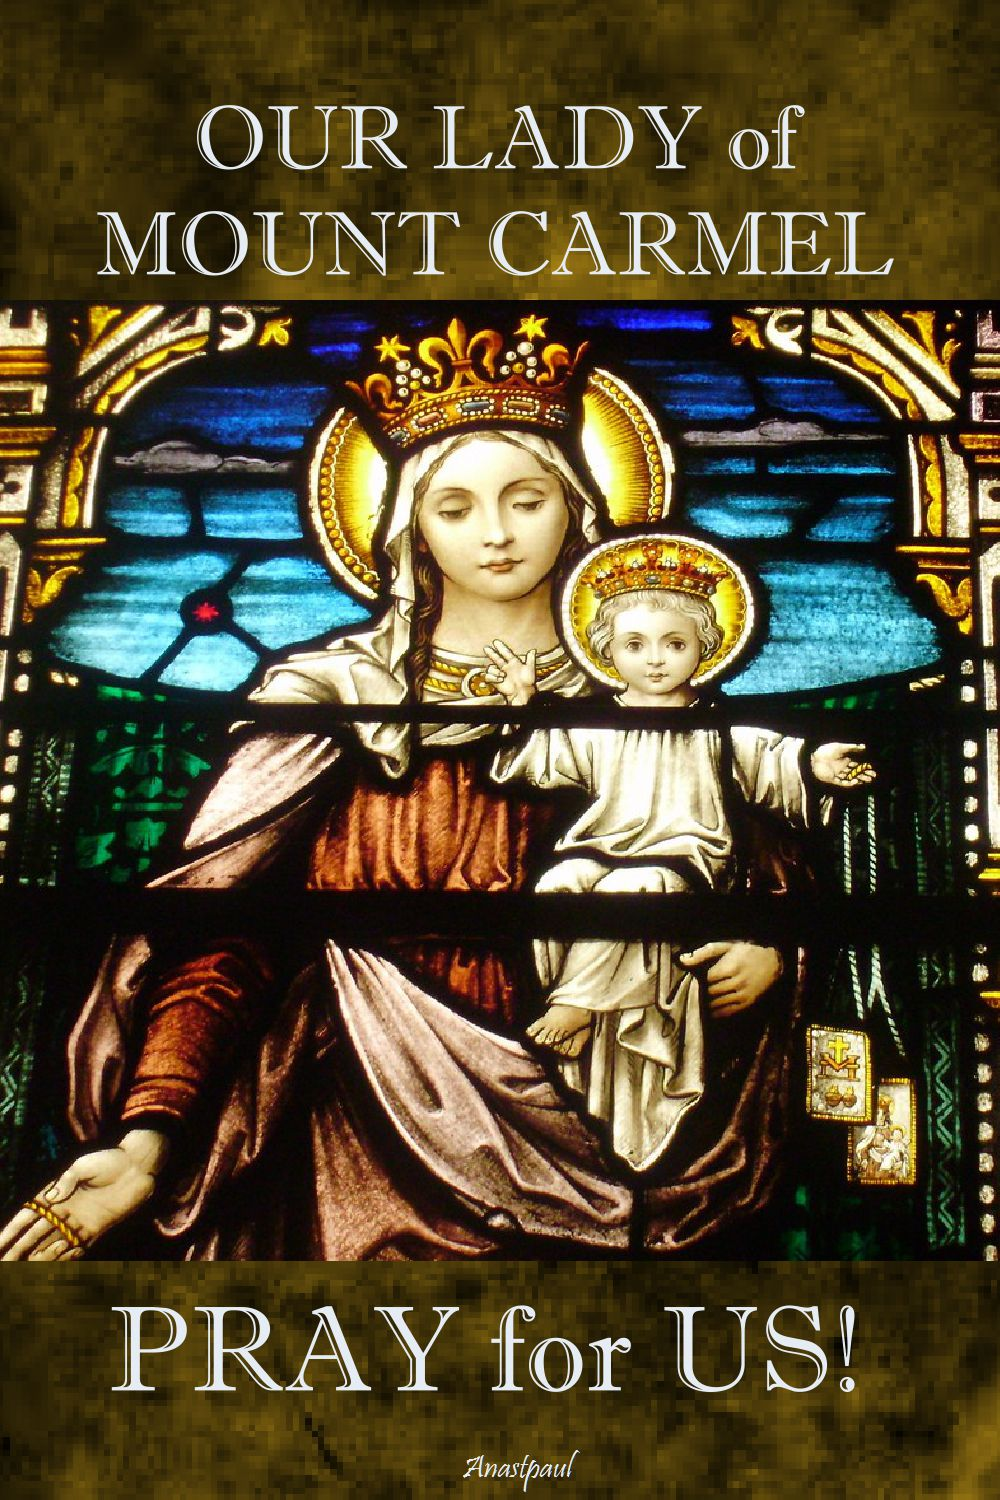 our lady of mount carmel - pray for us.2.jpg